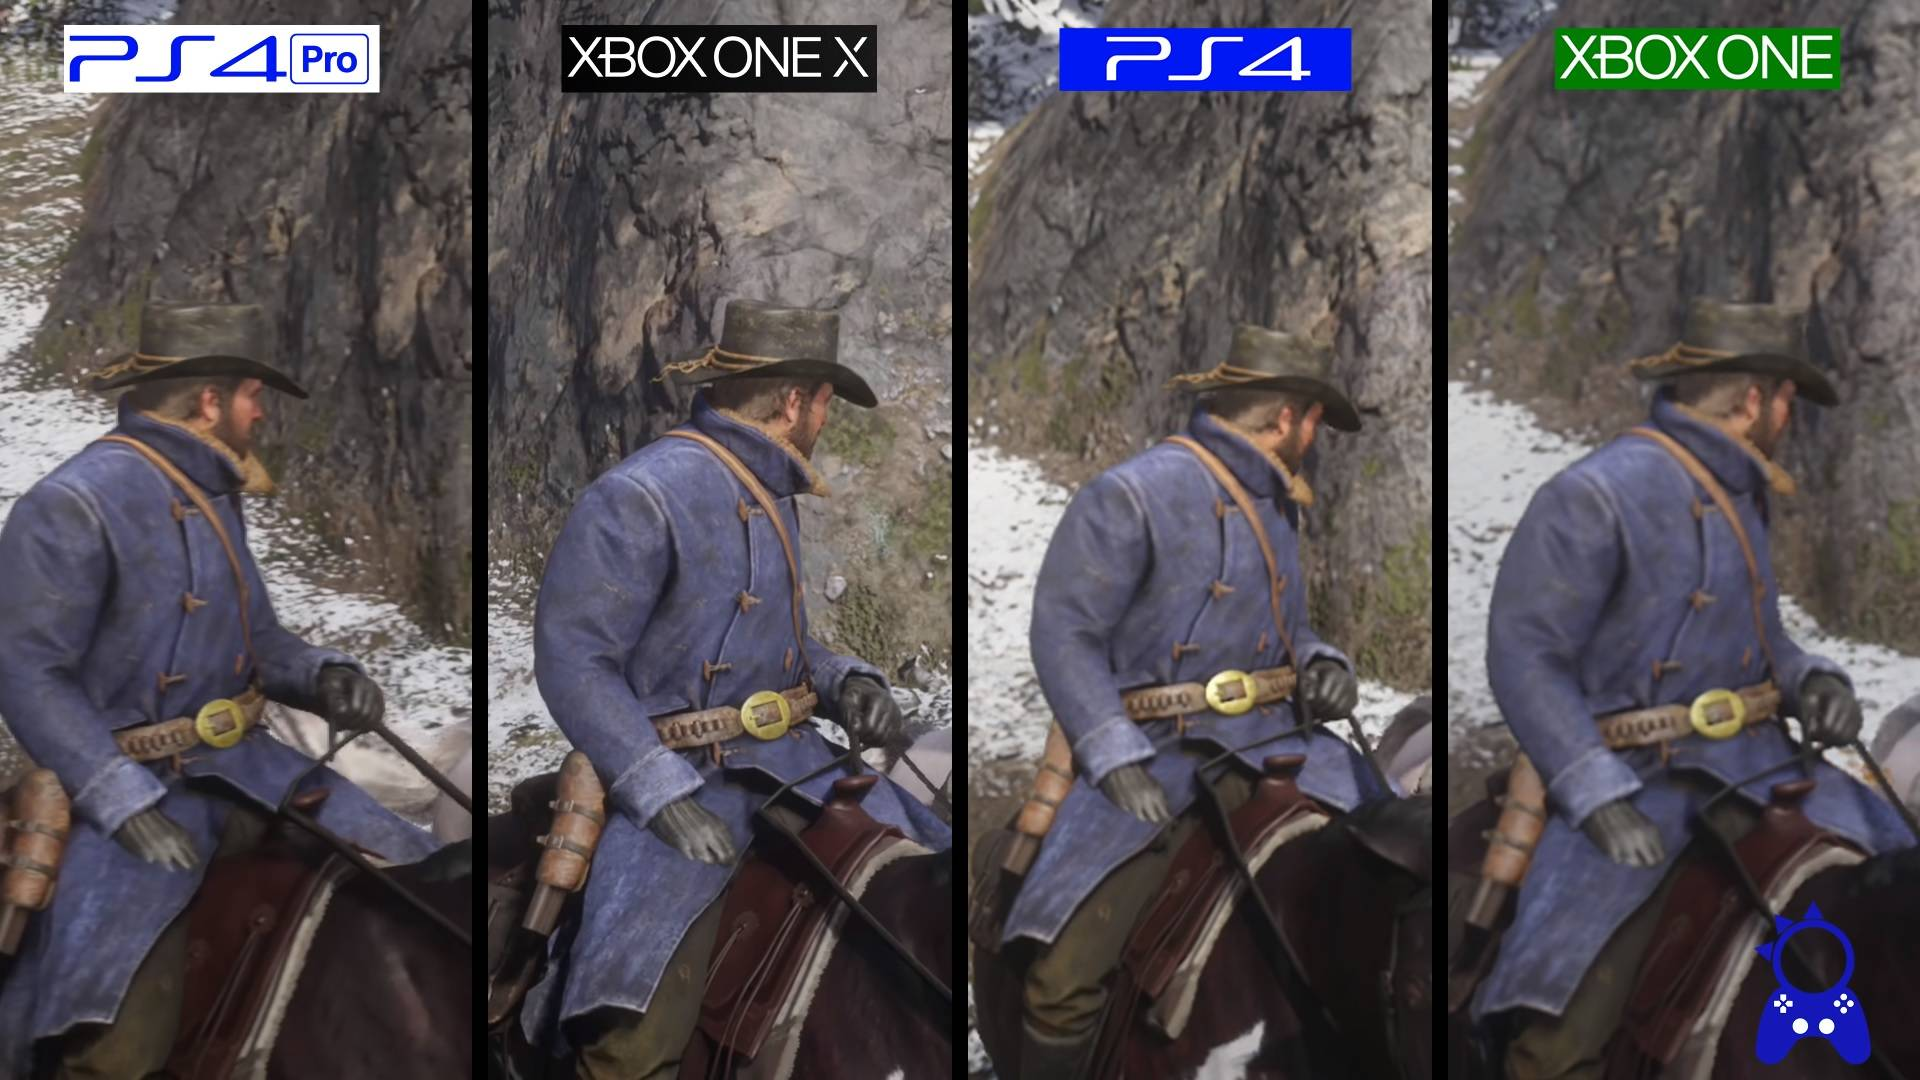 Rdr2 graphics blurry PS4 Pro - Page 45 - Red Dead Redemption